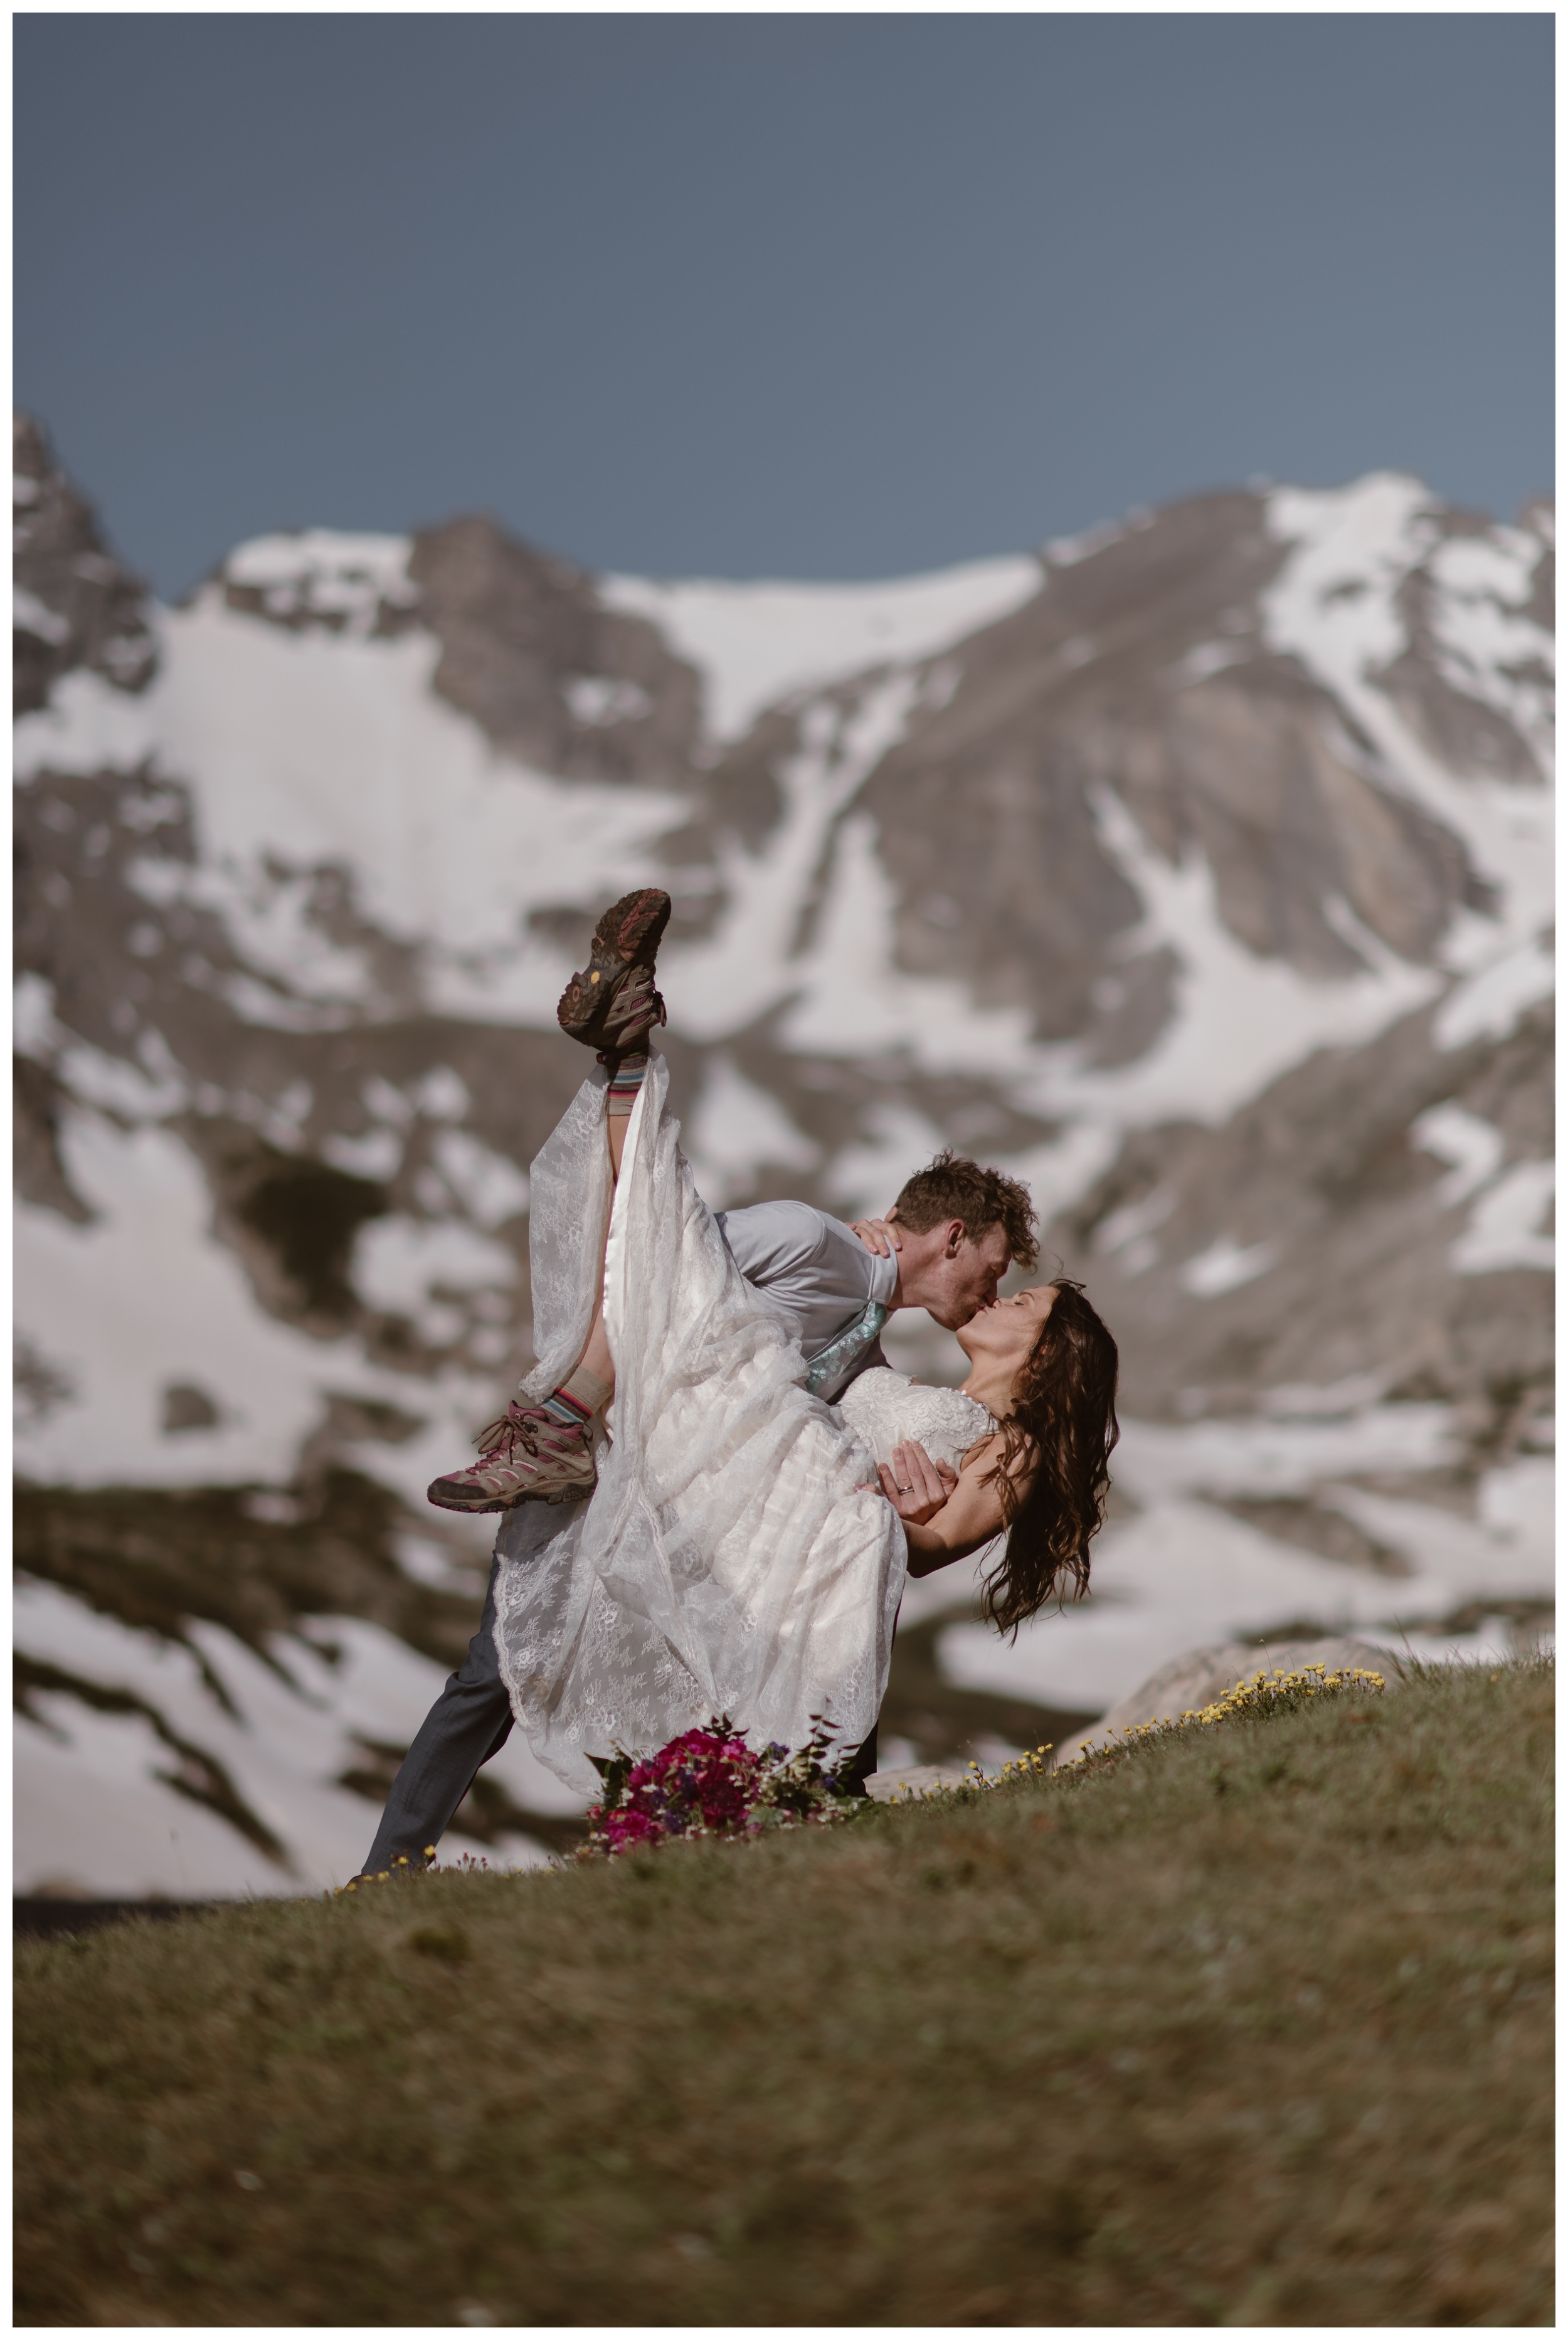 Matt dips his new bride Karen following their high alpine lake elopement ceremony outside Lake Isabelle, above Brainard Lake in Nederland, Colorado. Photo by Adventure Instead, Maddie Mae.